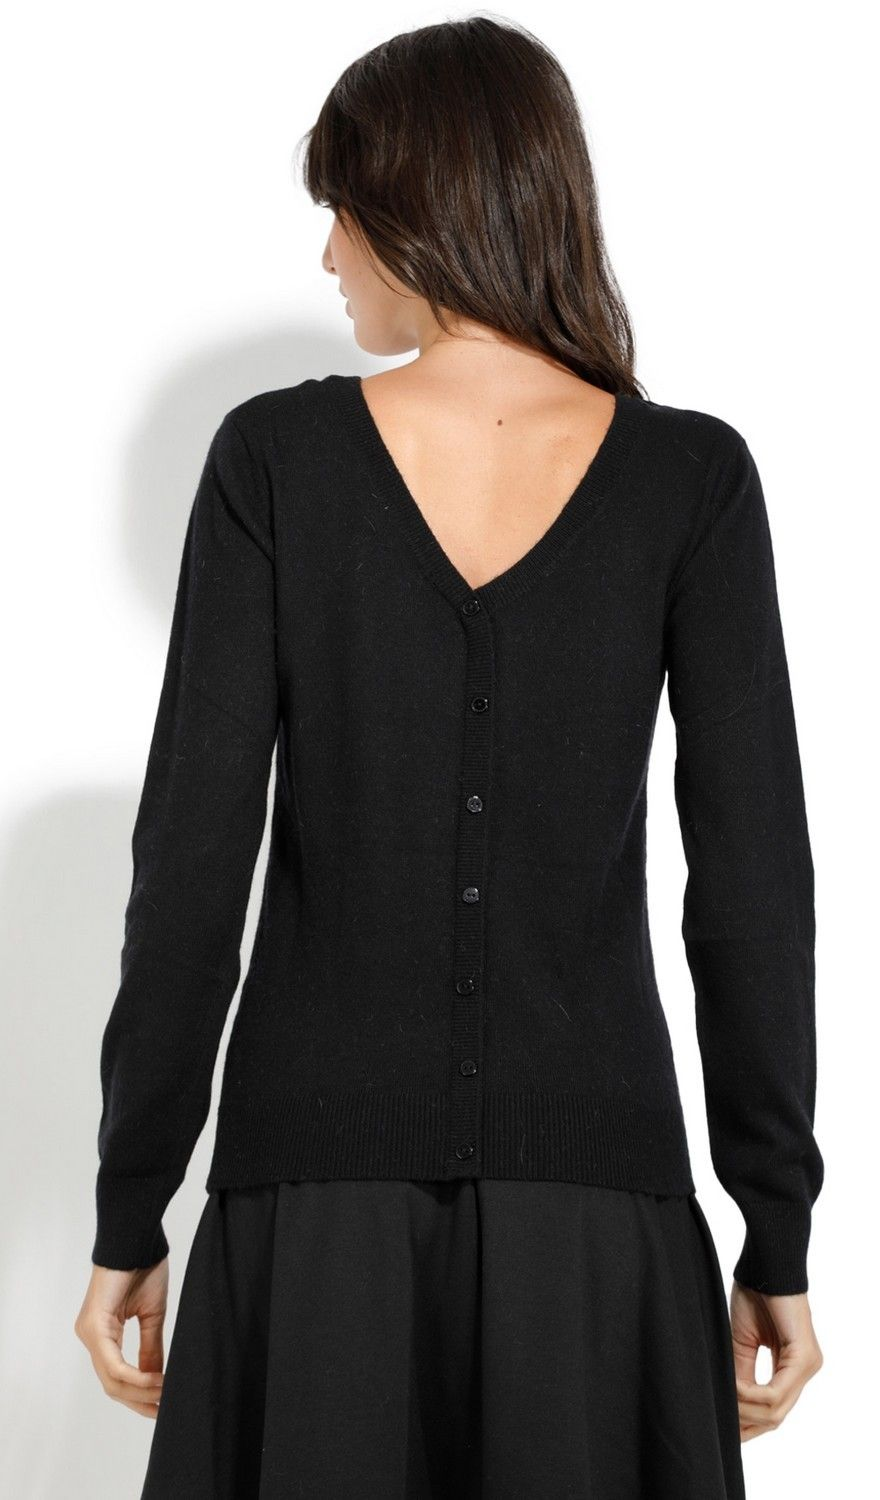 Assuili Boat Neck Buttoned Back Sweater in Black